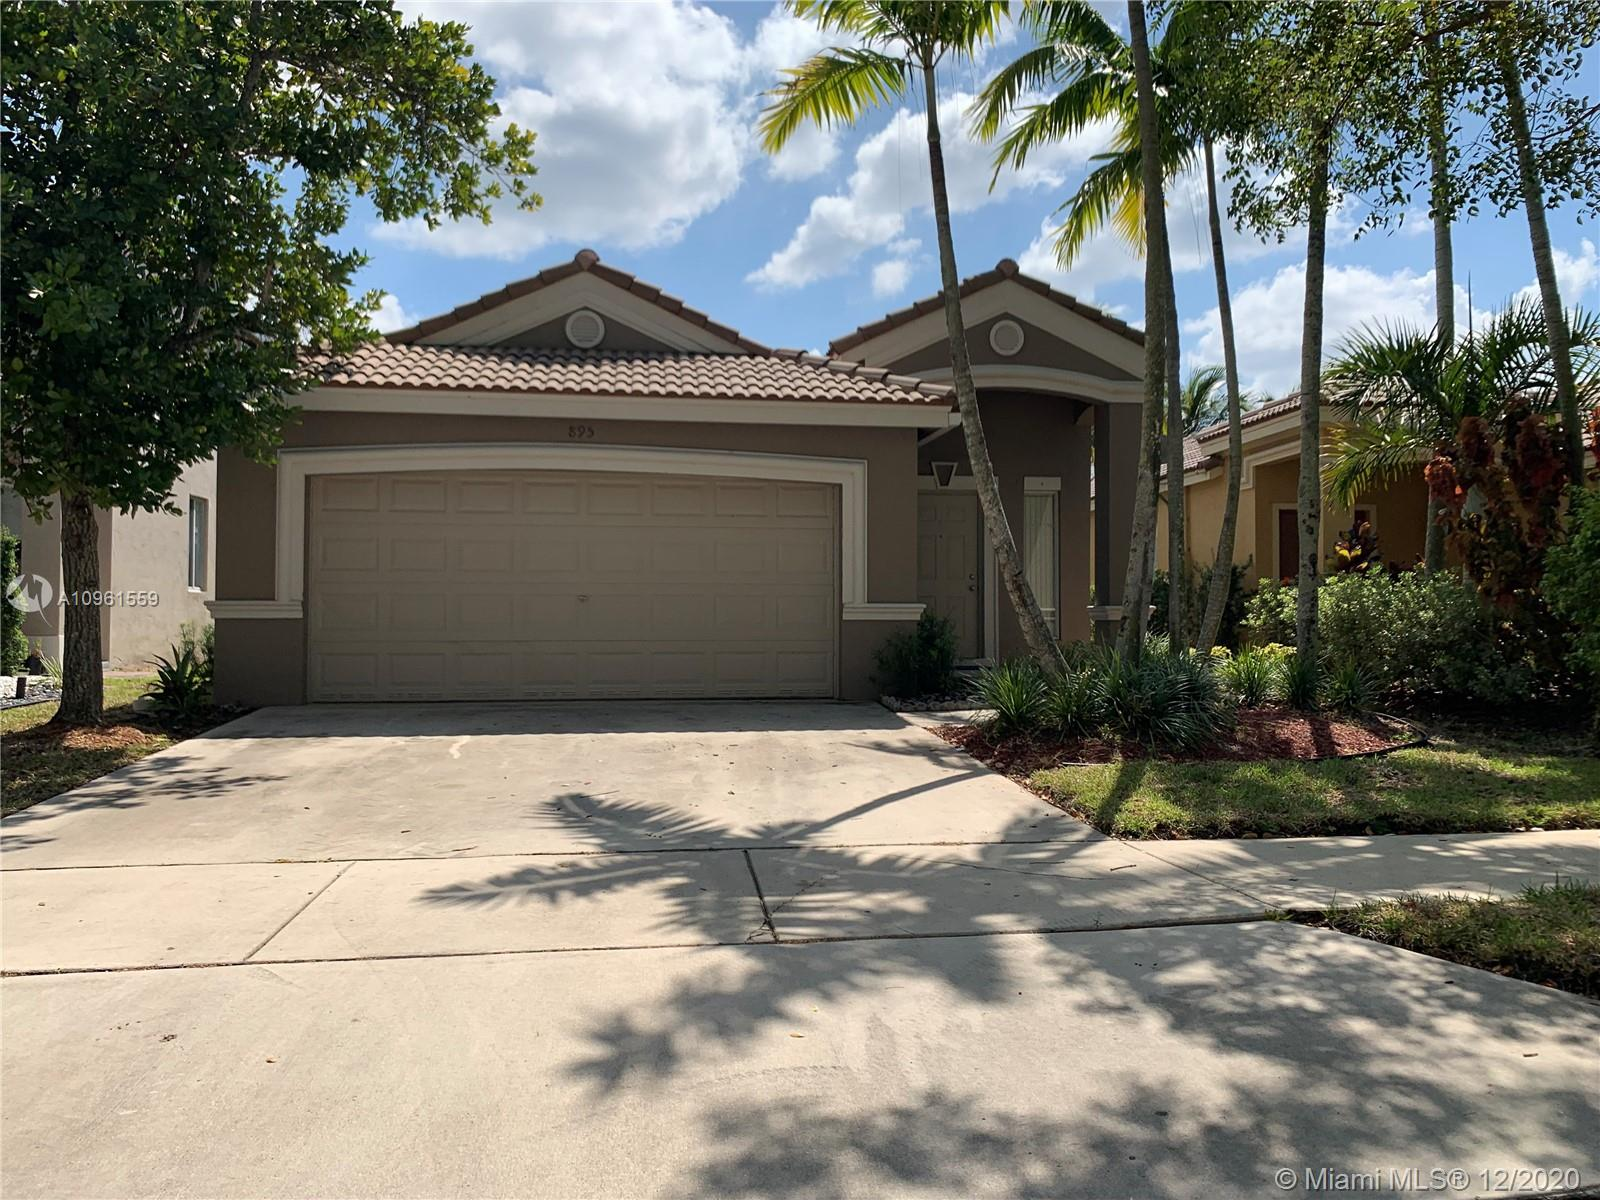 Weston - 895 Golden Cane Dr, Weston, FL 33327